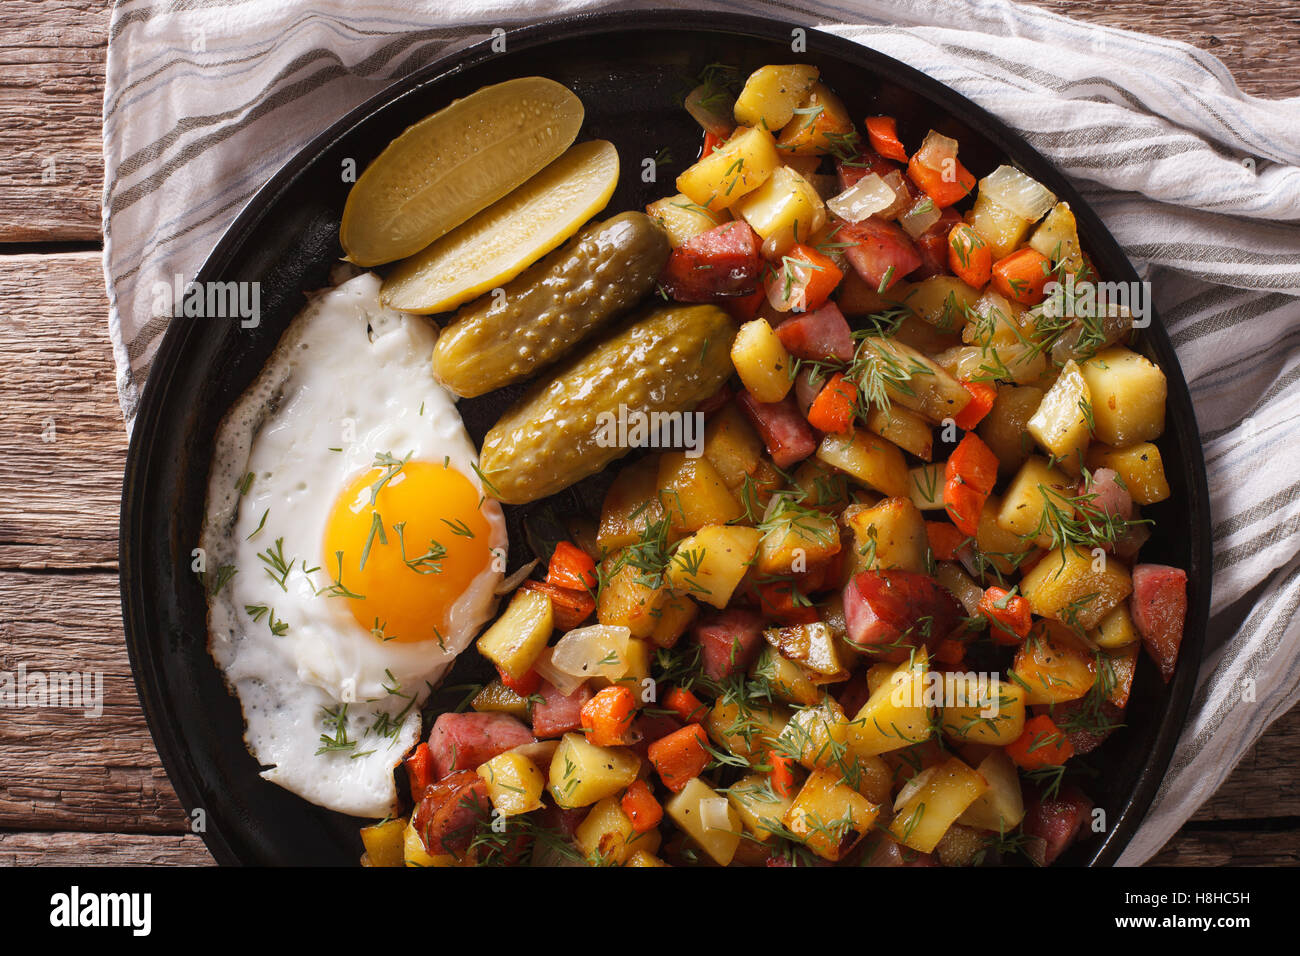 Norwegian food pyttipanne: fried potatoes with sausages, eggs and pickled cucumbers close-up on a plate. Horizontal - Stock Image